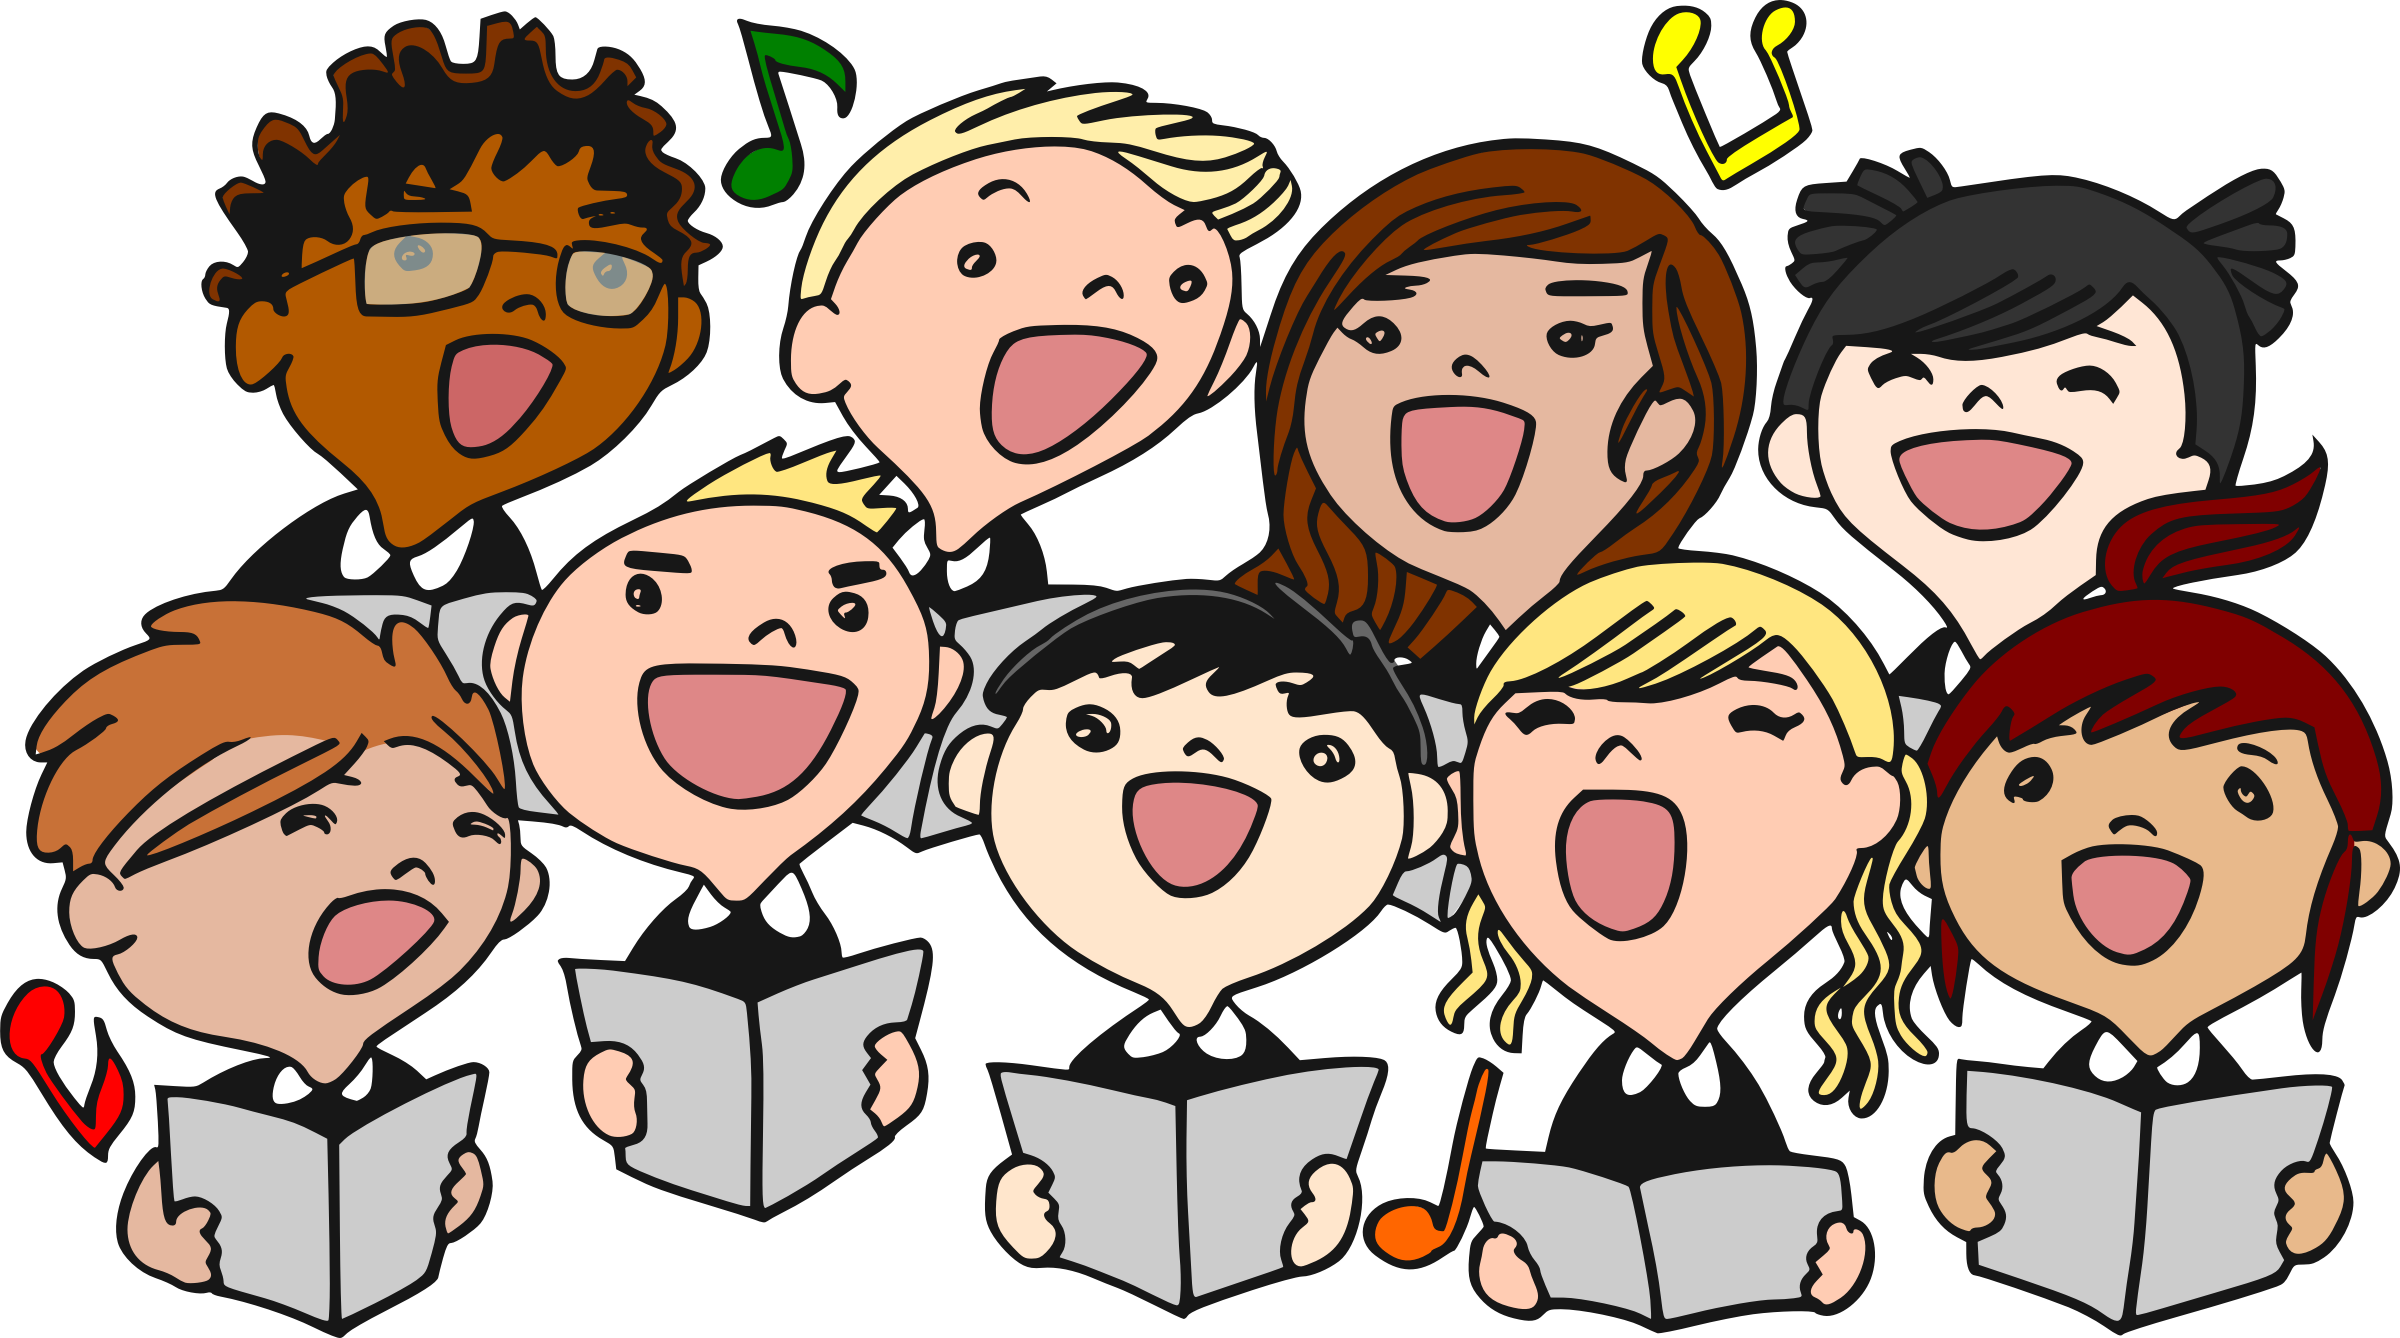 Children choral big image. Schedule clipart children's